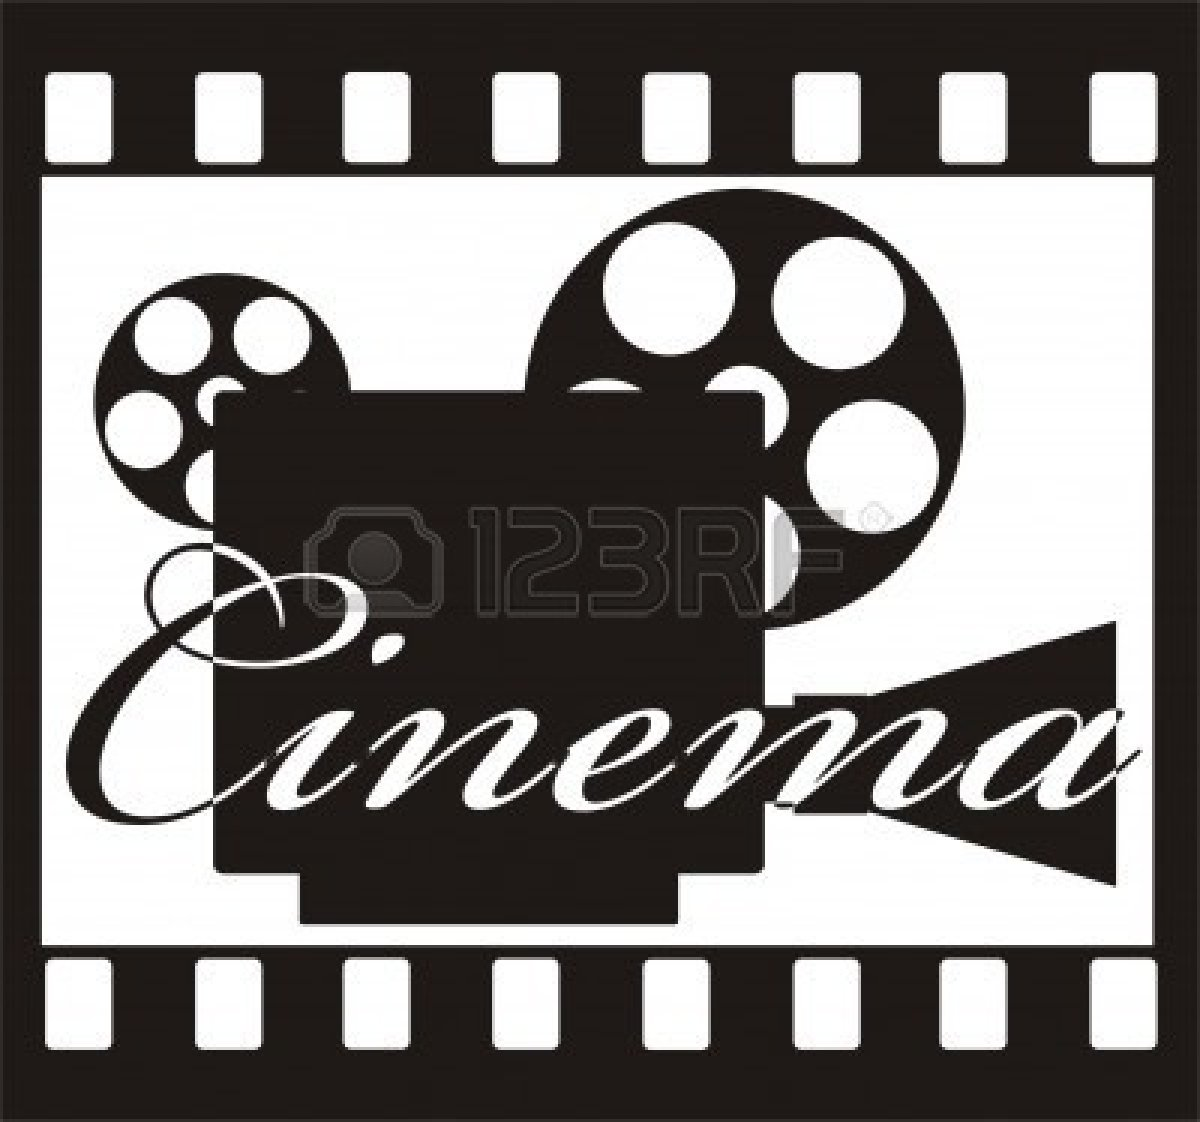 Cinema clipart clip library library Cinema clipart. #5362934 | Clipart Panda - Free Clipart Images clip library library